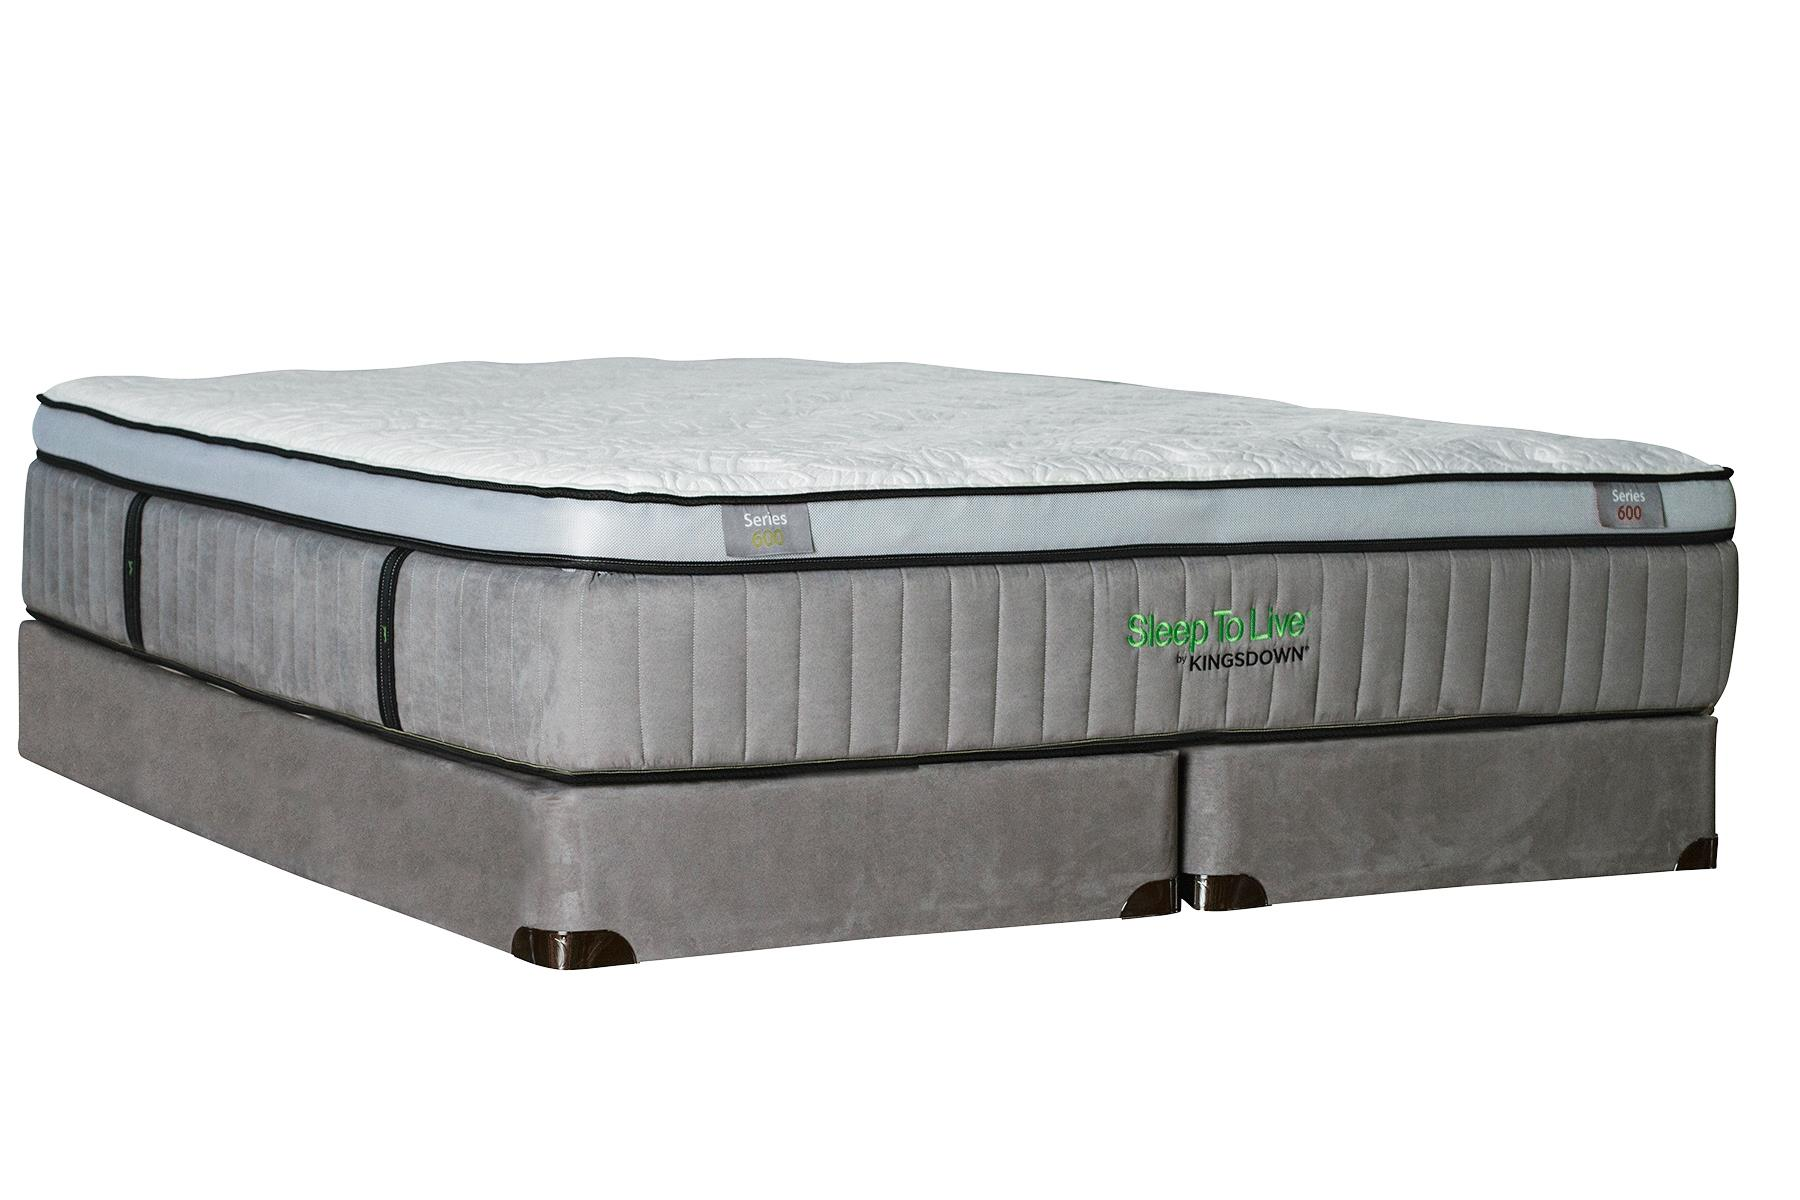 Kingsdown Sleep to Live 600 King Euro Top Mattress Set with Latex - Item Number: Series600-K+2x1128SFH-TXL